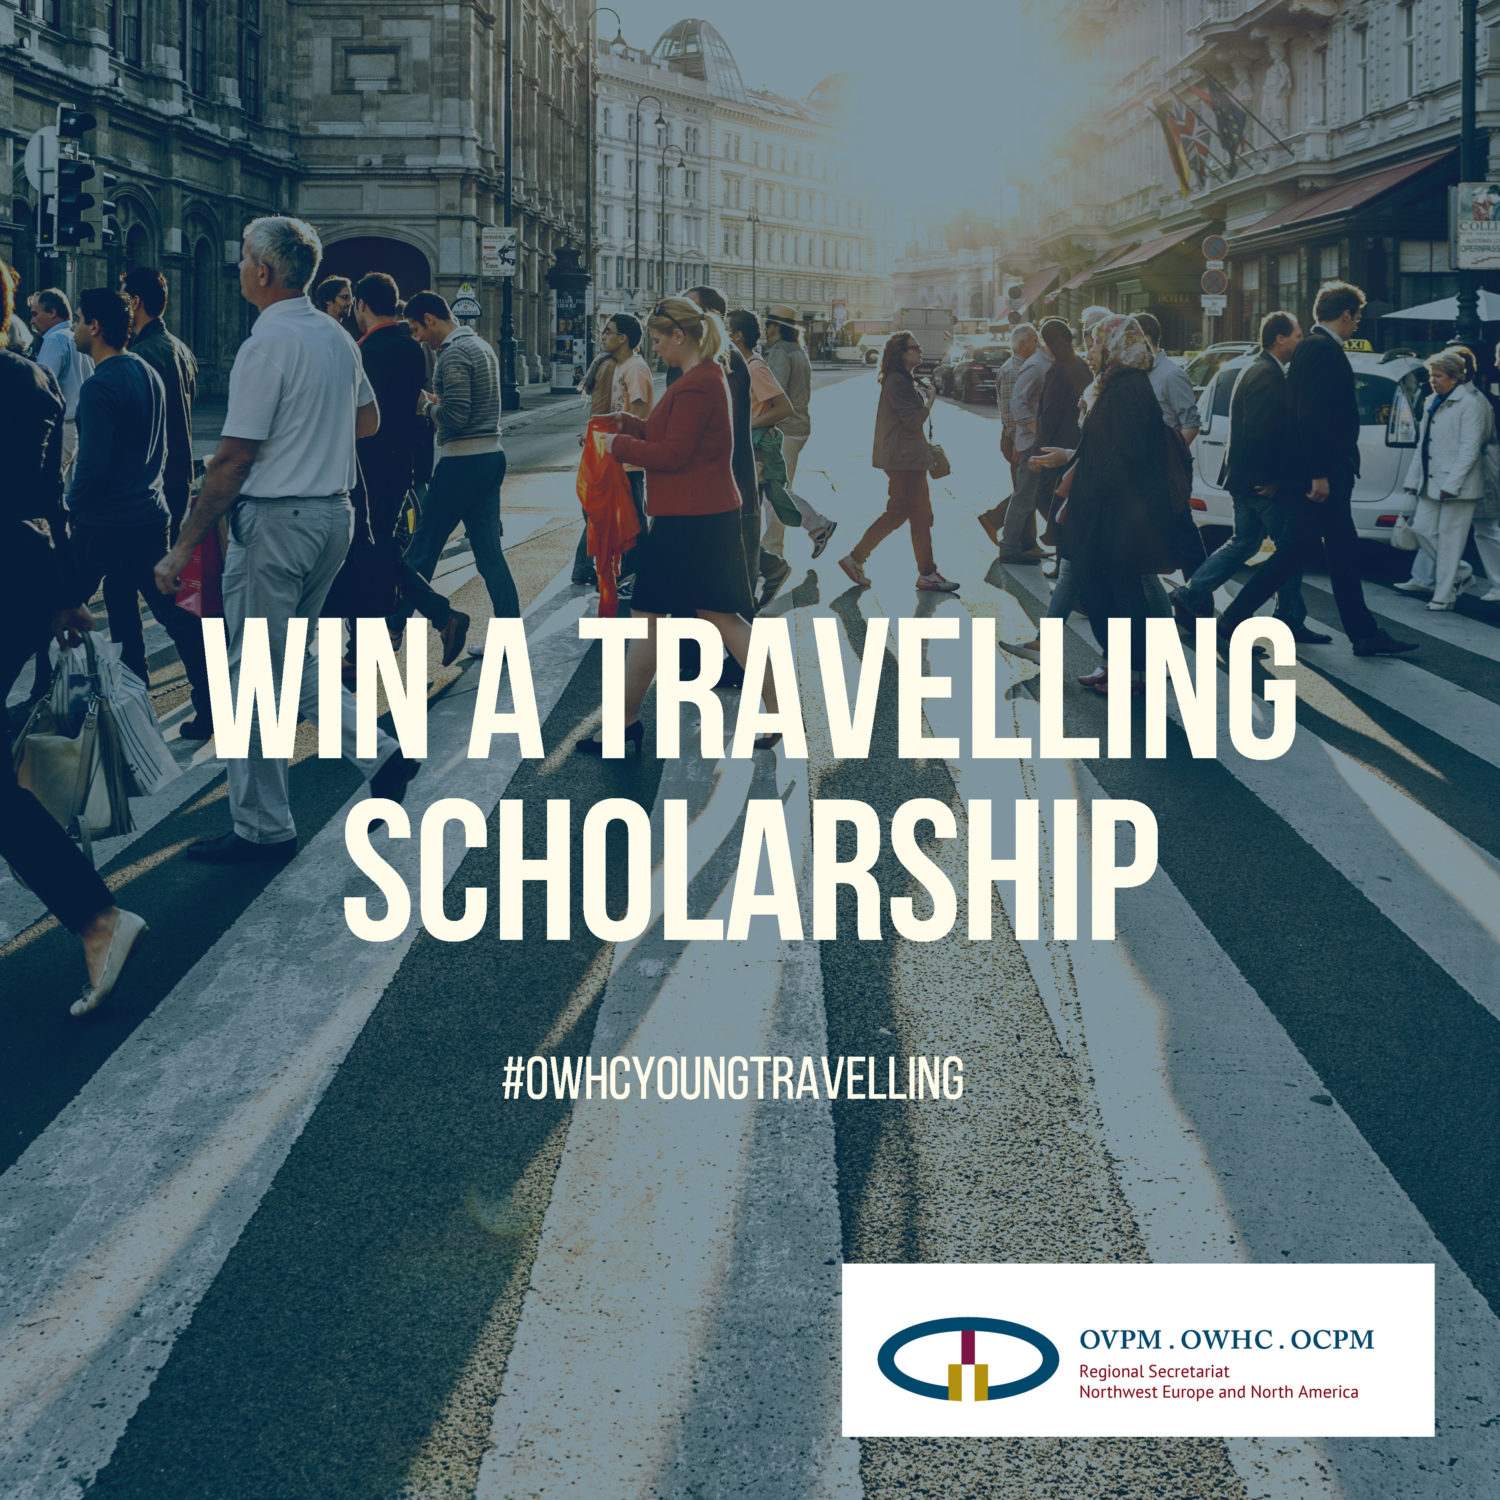 OWHC Young travelling Scholarship 2019